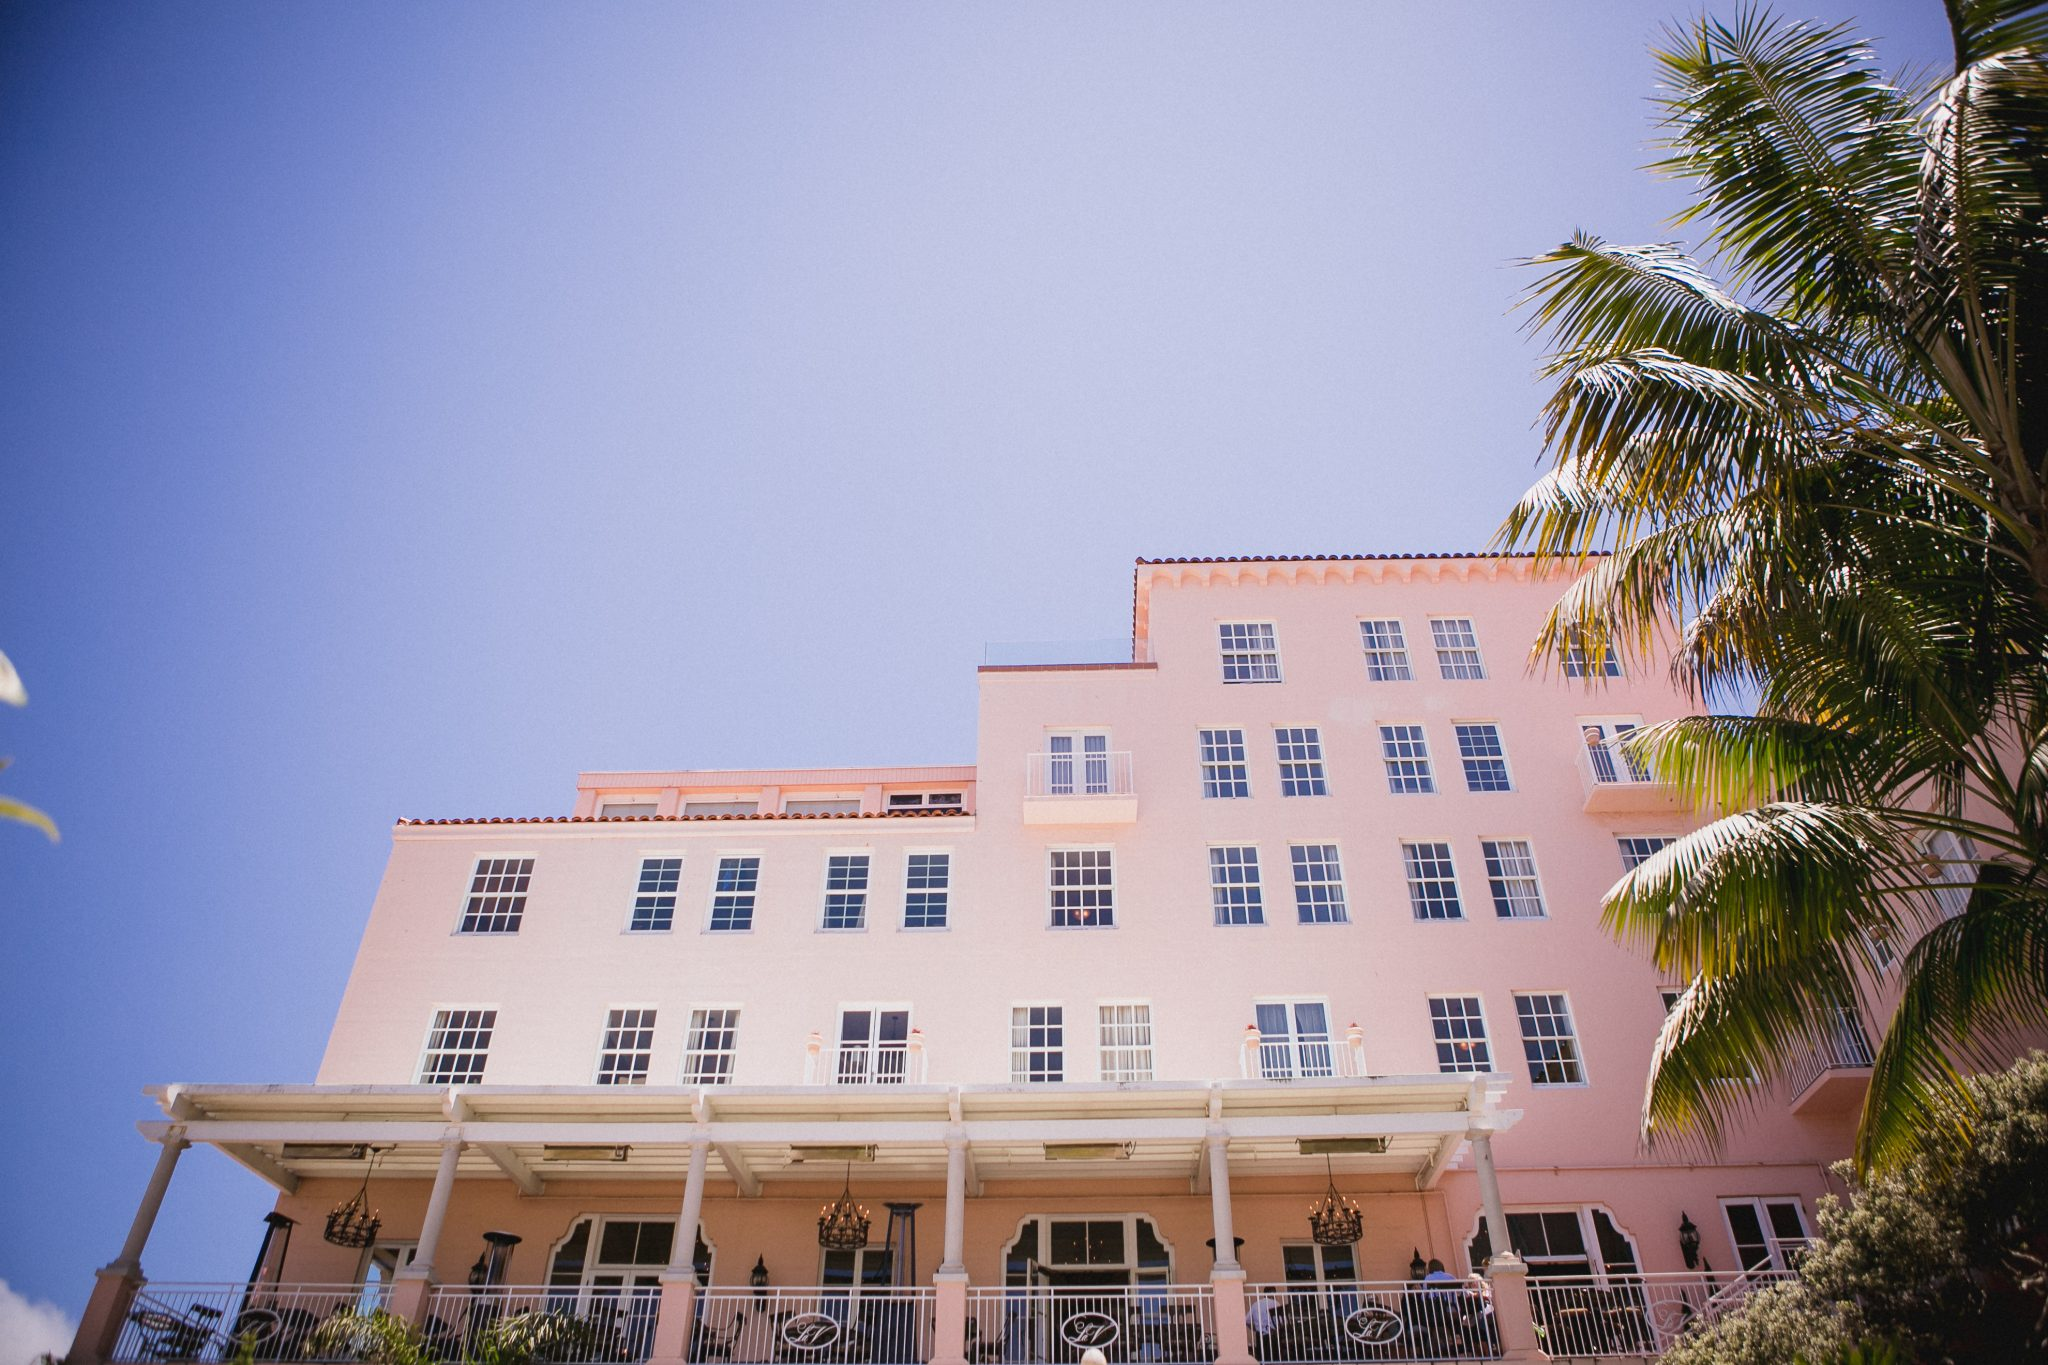 La Valencia Hotel's pink building by palm trees